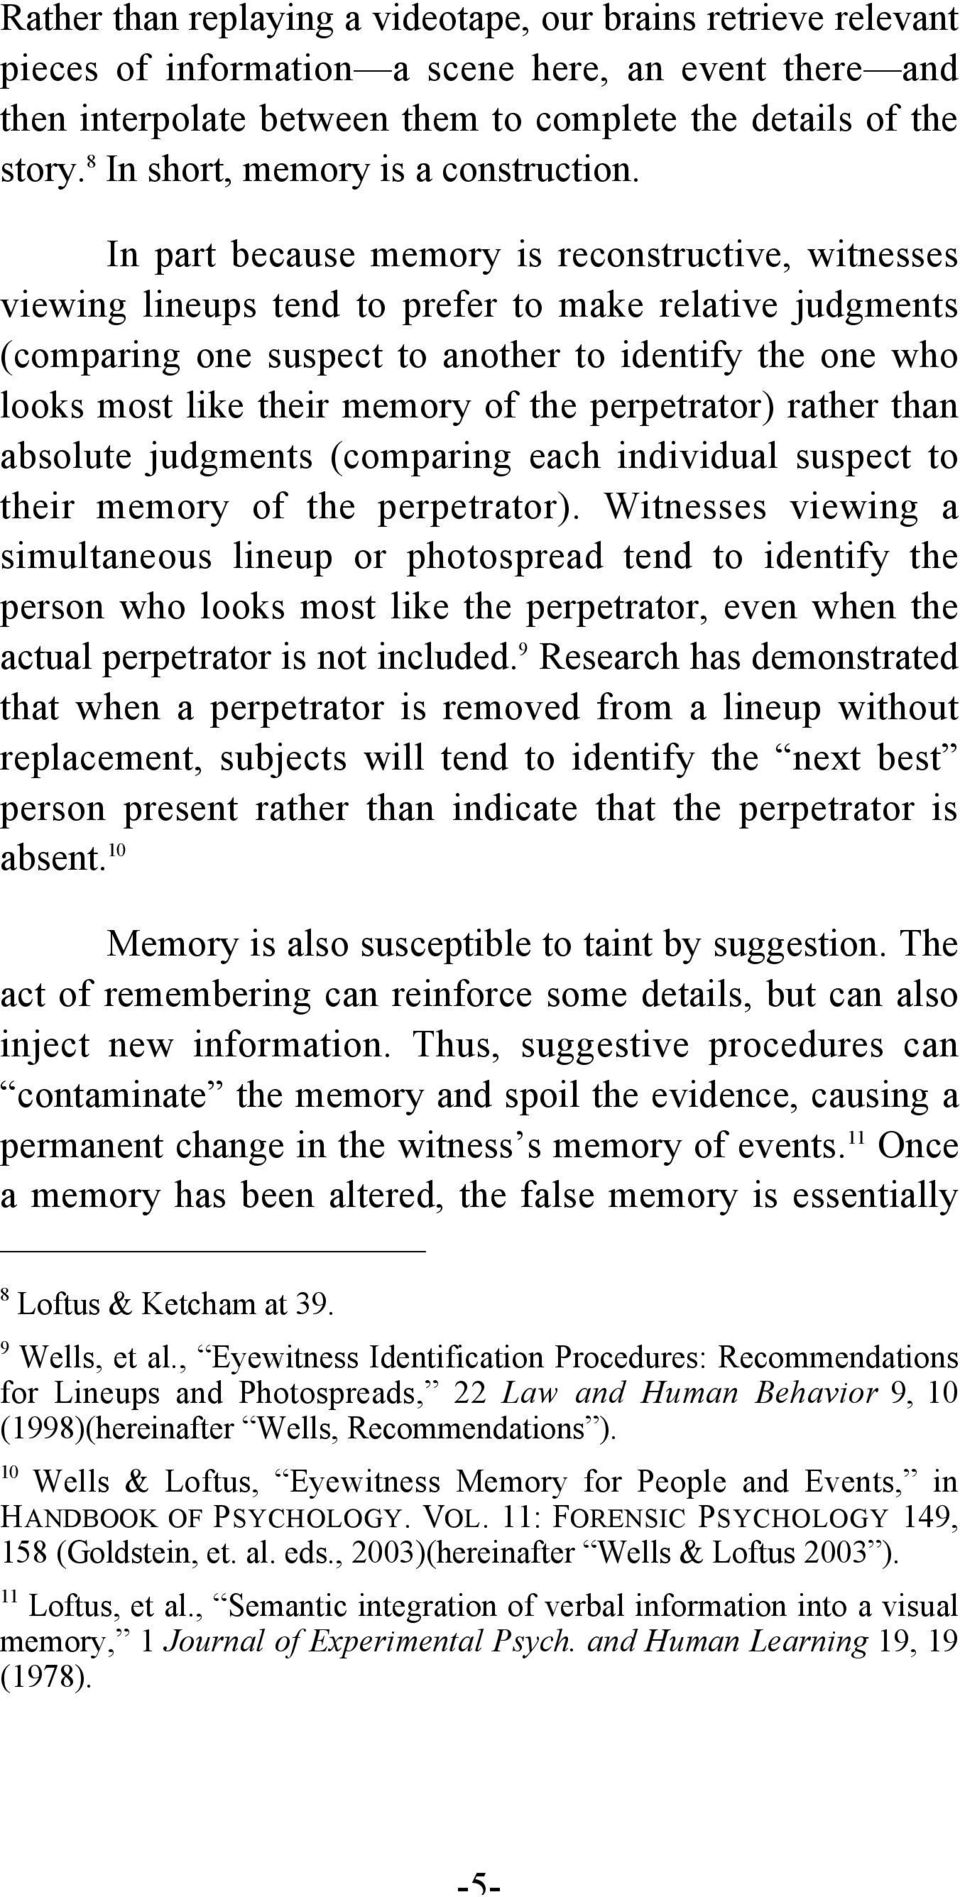 In part because memory is reconstructive, witnesses viewing lineups tend to prefer to make relative judgments (comparing one suspect to another to identify the one who looks most like their memory of